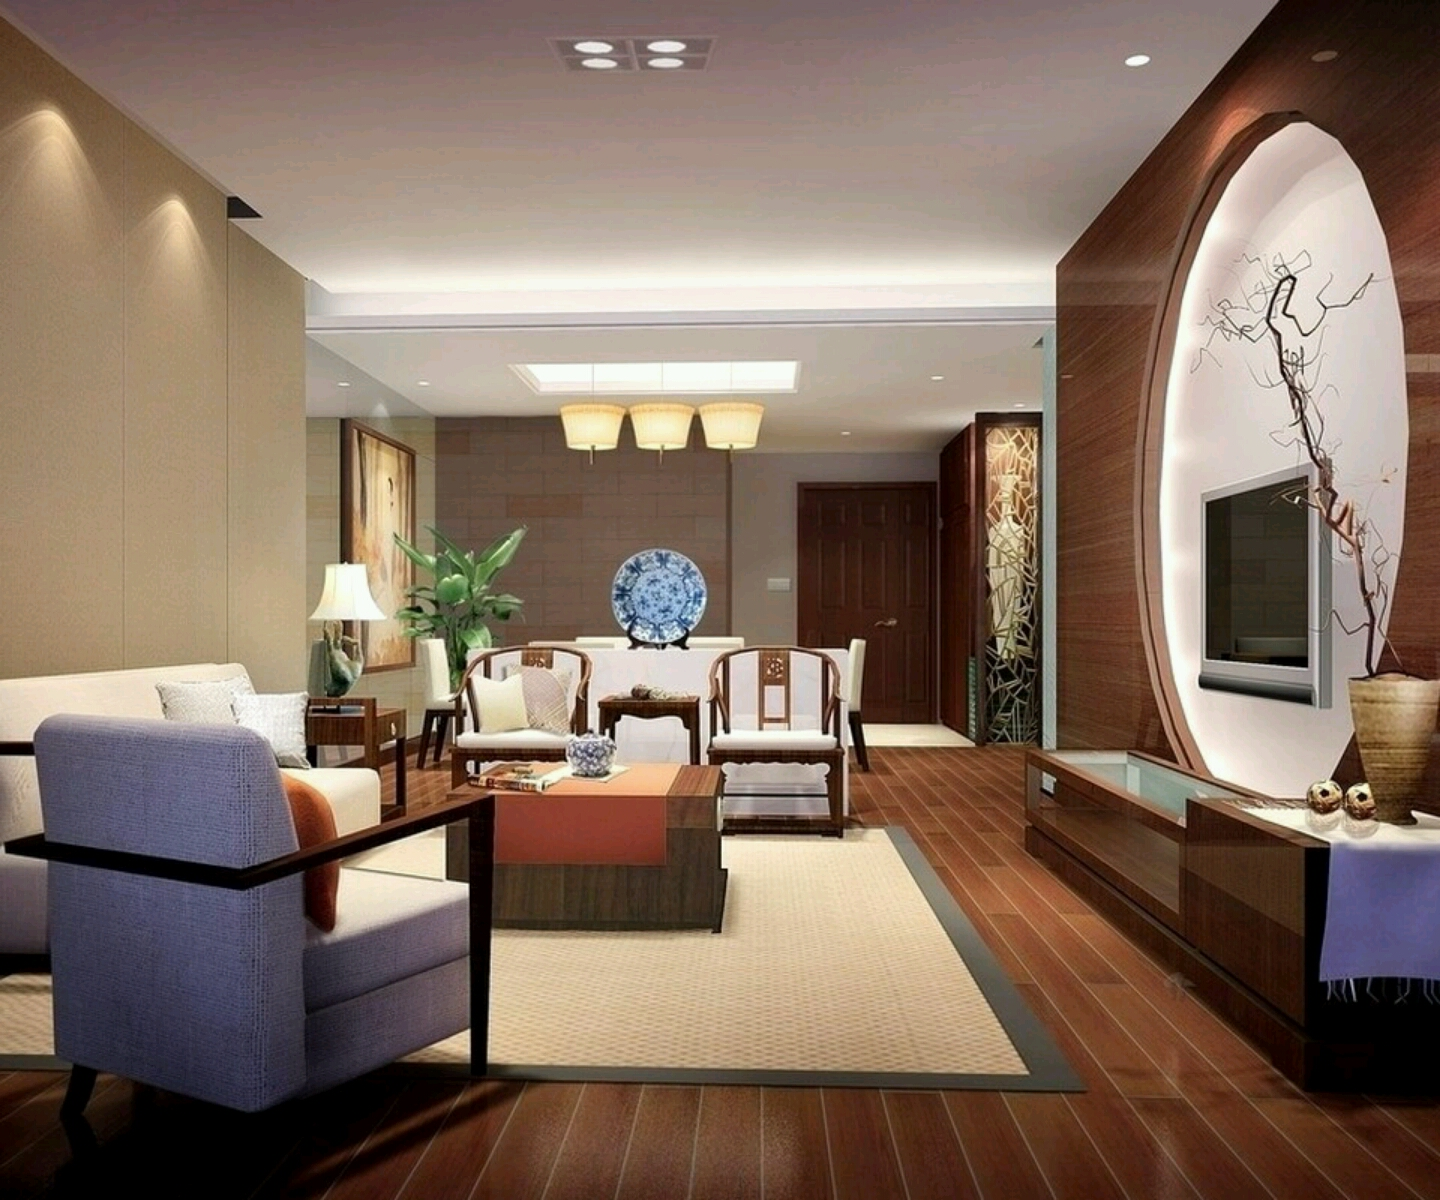 Luxury homes interior decoration living room designs ideas for Living room interior